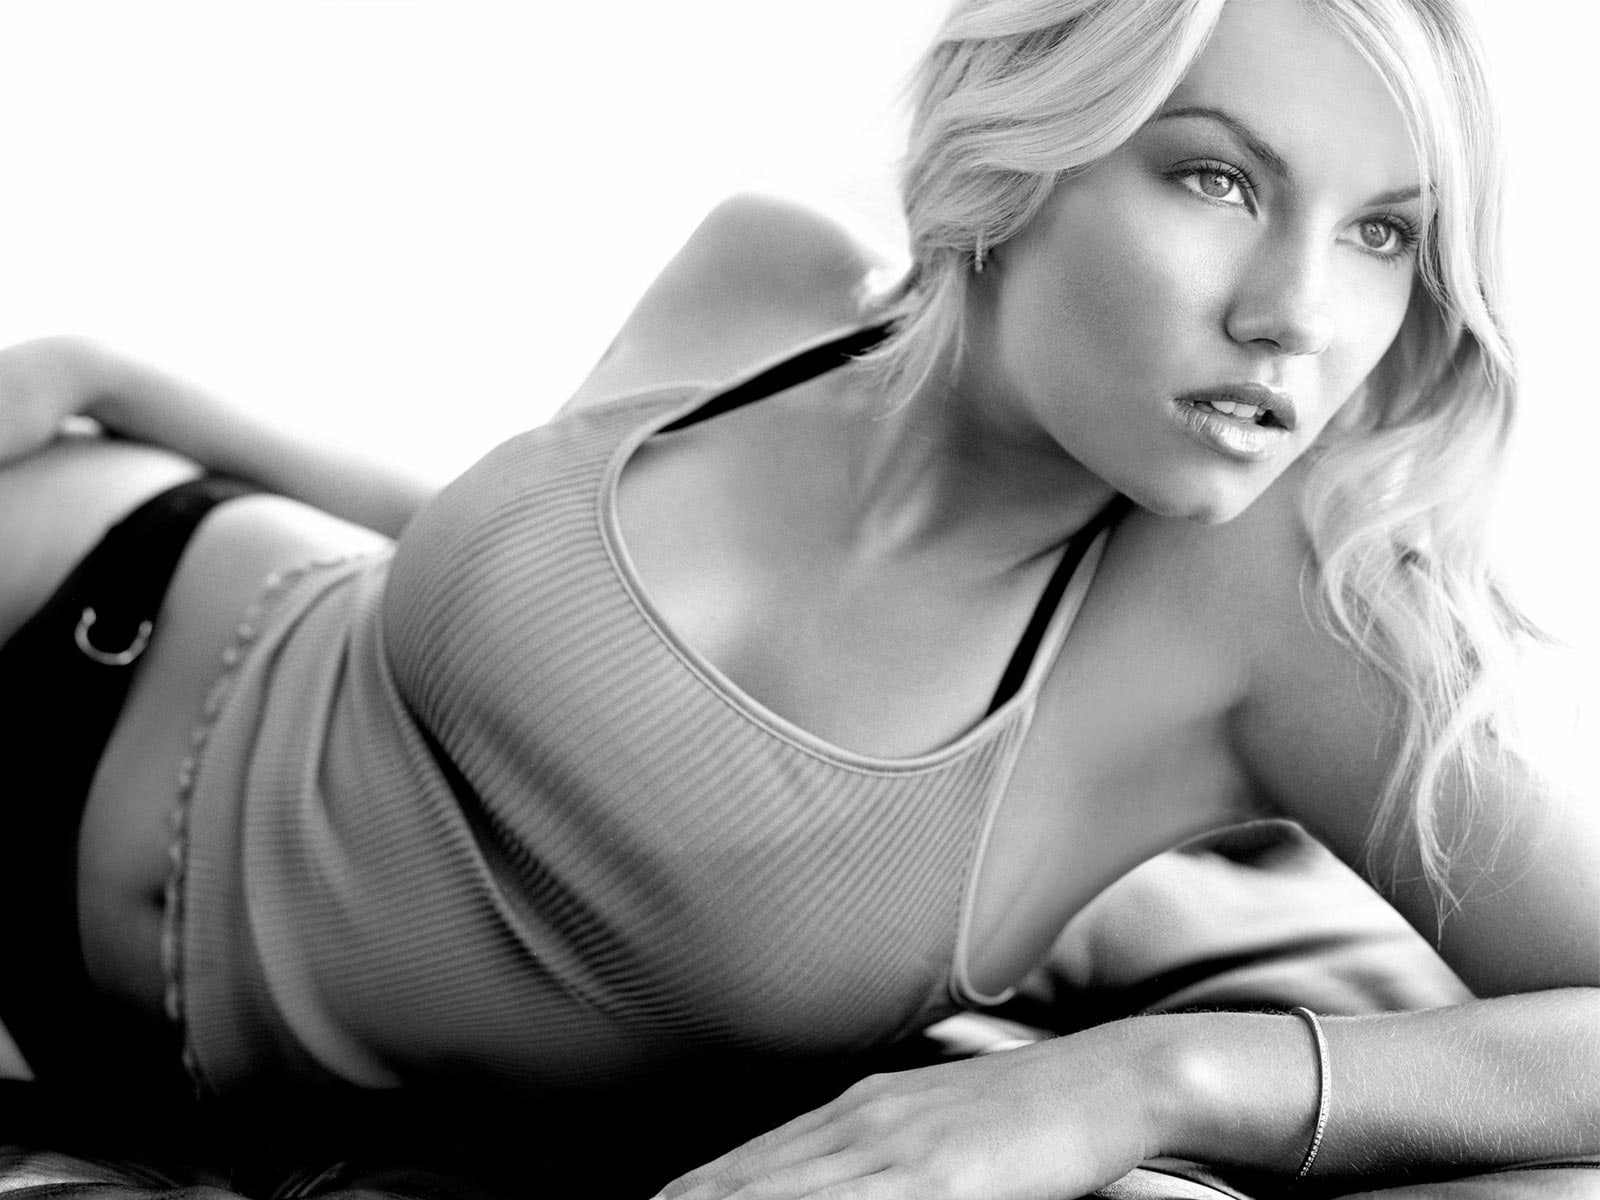 Elisha Cuthbert Desktop wallpapers